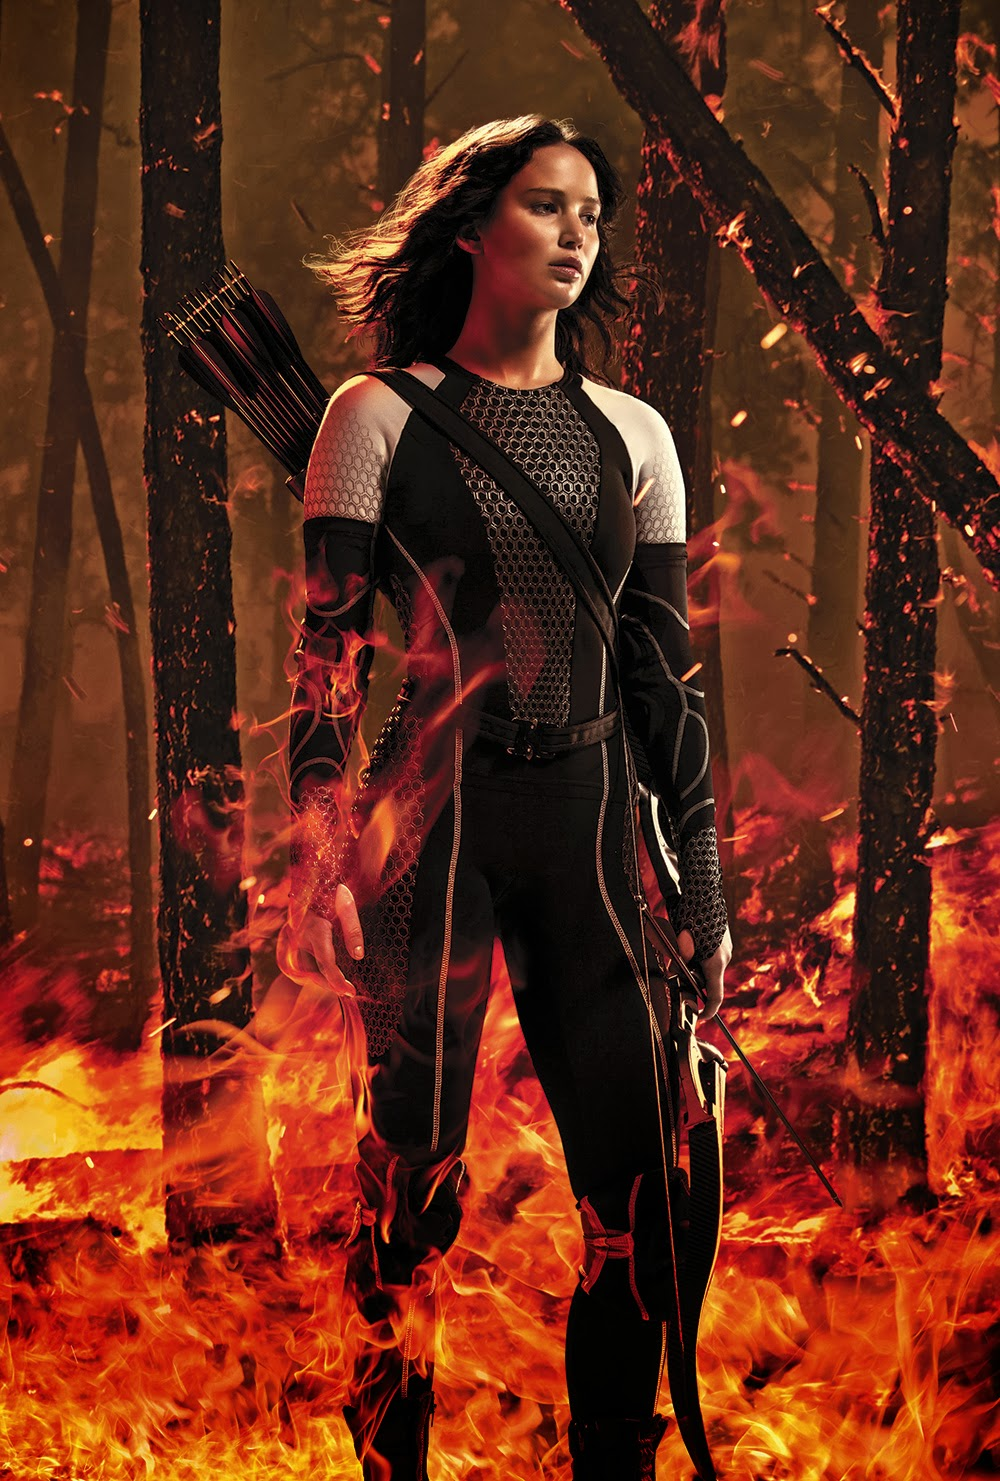 The Hunger Games: Catching Fire 2013 - 123movies